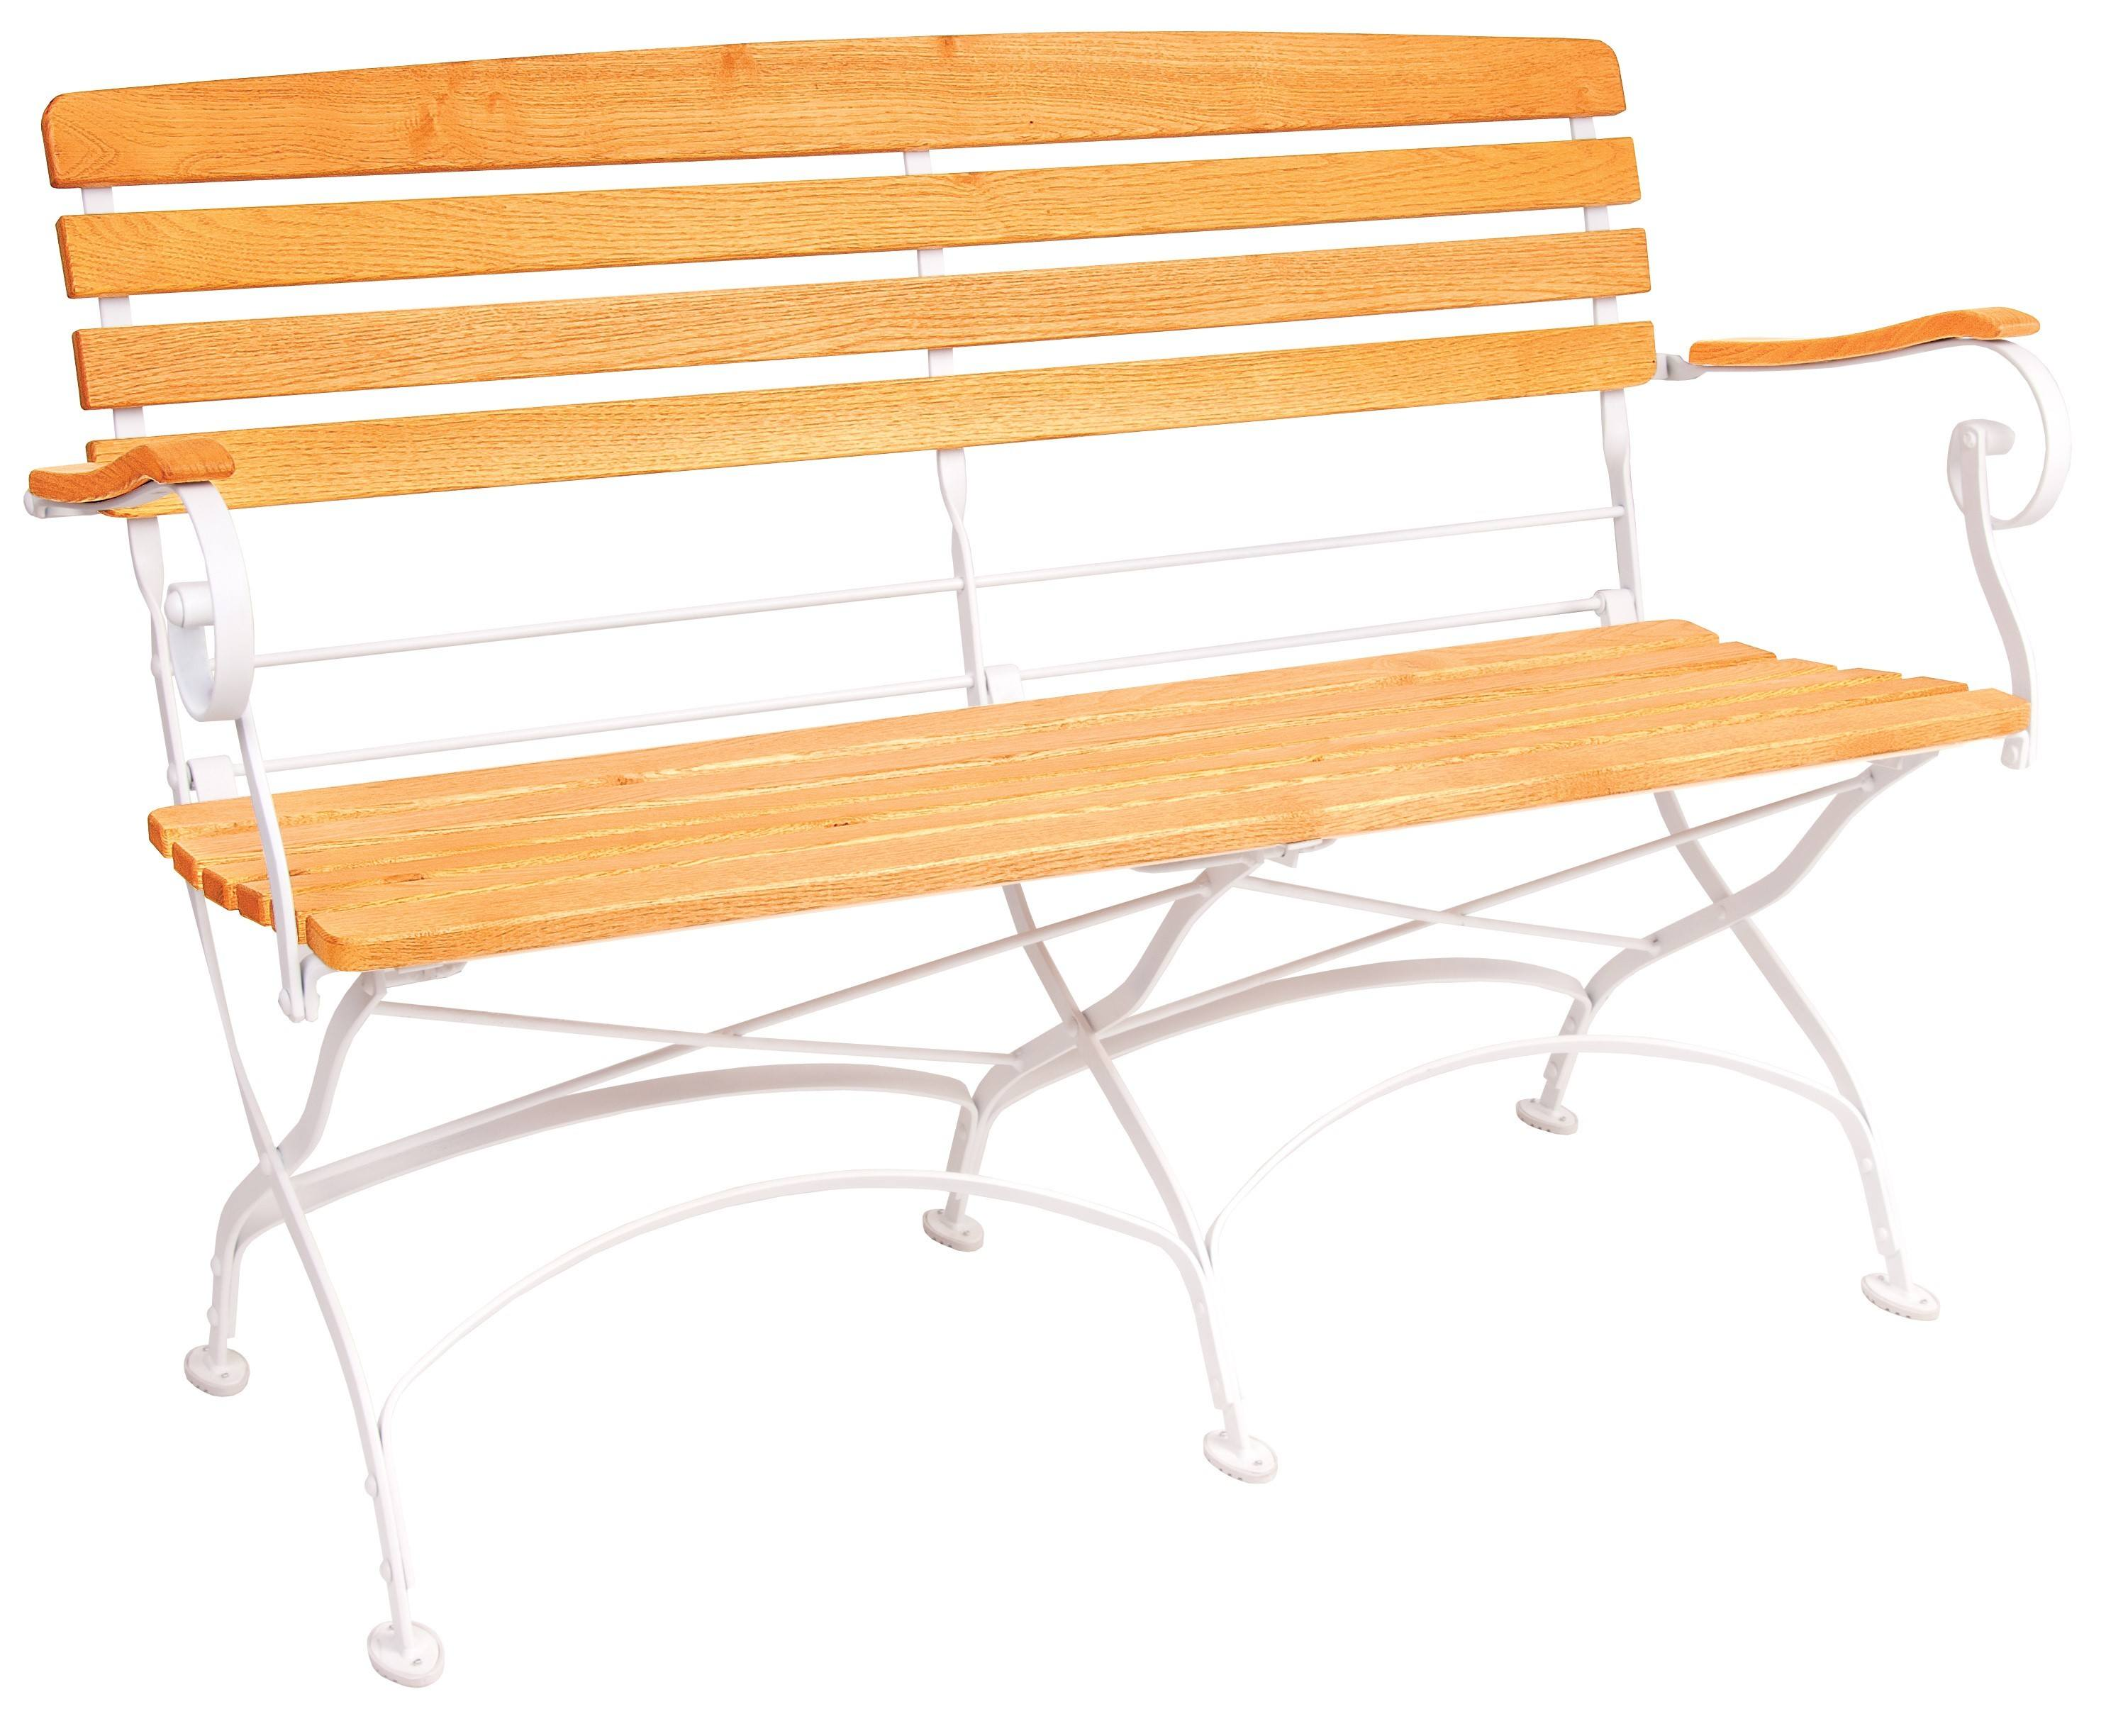 <p>Outdoor Furniture – Metal & Wooden Dining Collection – Creta Bench.</p> <p> </p> <p>Creta Furniture Bench with honey coloured hardwood seat armrests and backrest with gently curved metal shaped frame.</p> <p> </p> <p>Ideally suited for either indoor or outdoor relaxed dining location in pubs or restaurants or more intimate café bistro al fresco area or for events requiring easy to fold and store furniture</p>